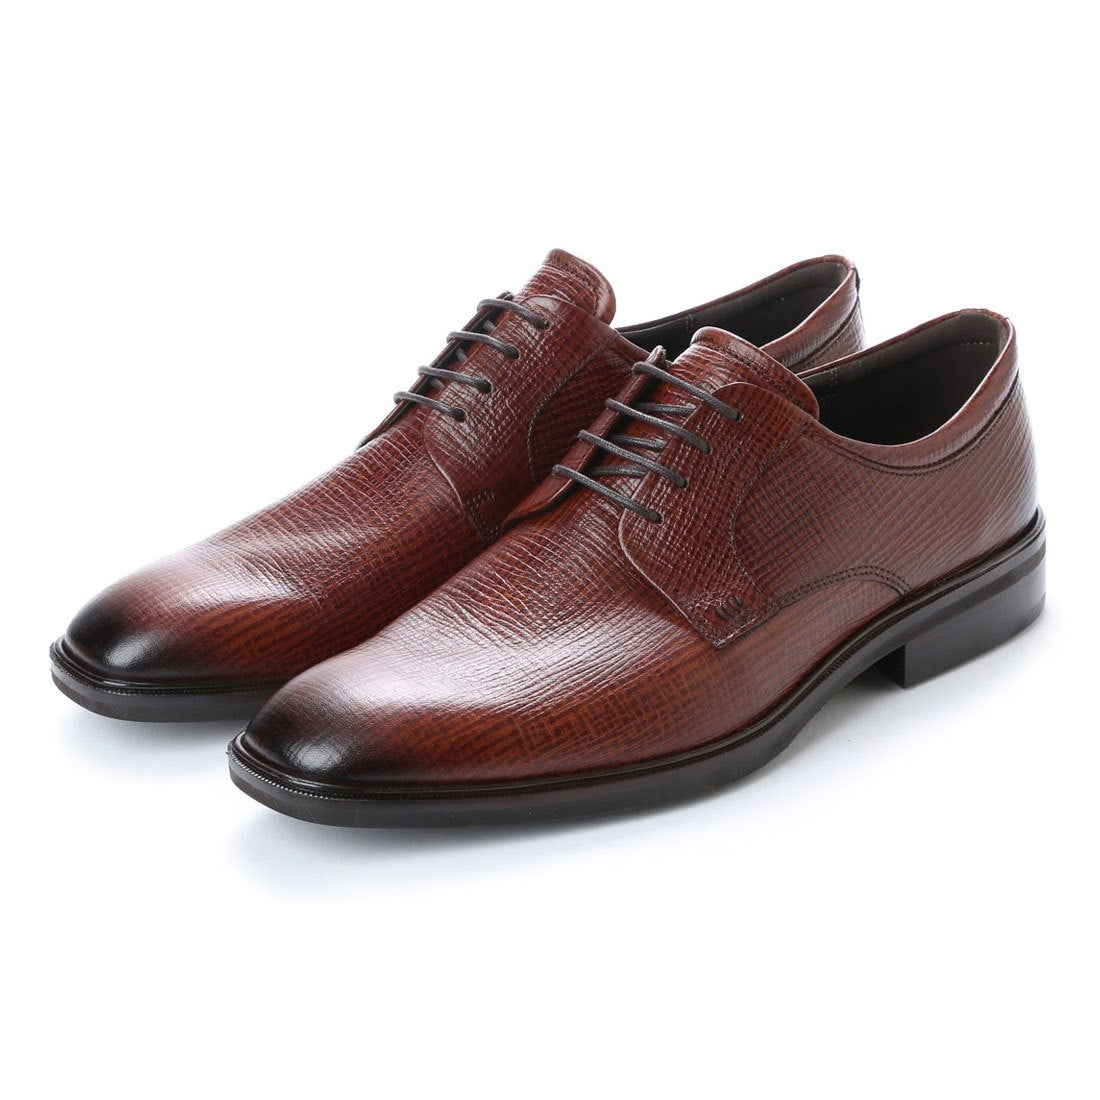 エコー ECCO Illinois Plain Toe Tie (COGNAC) メンズ